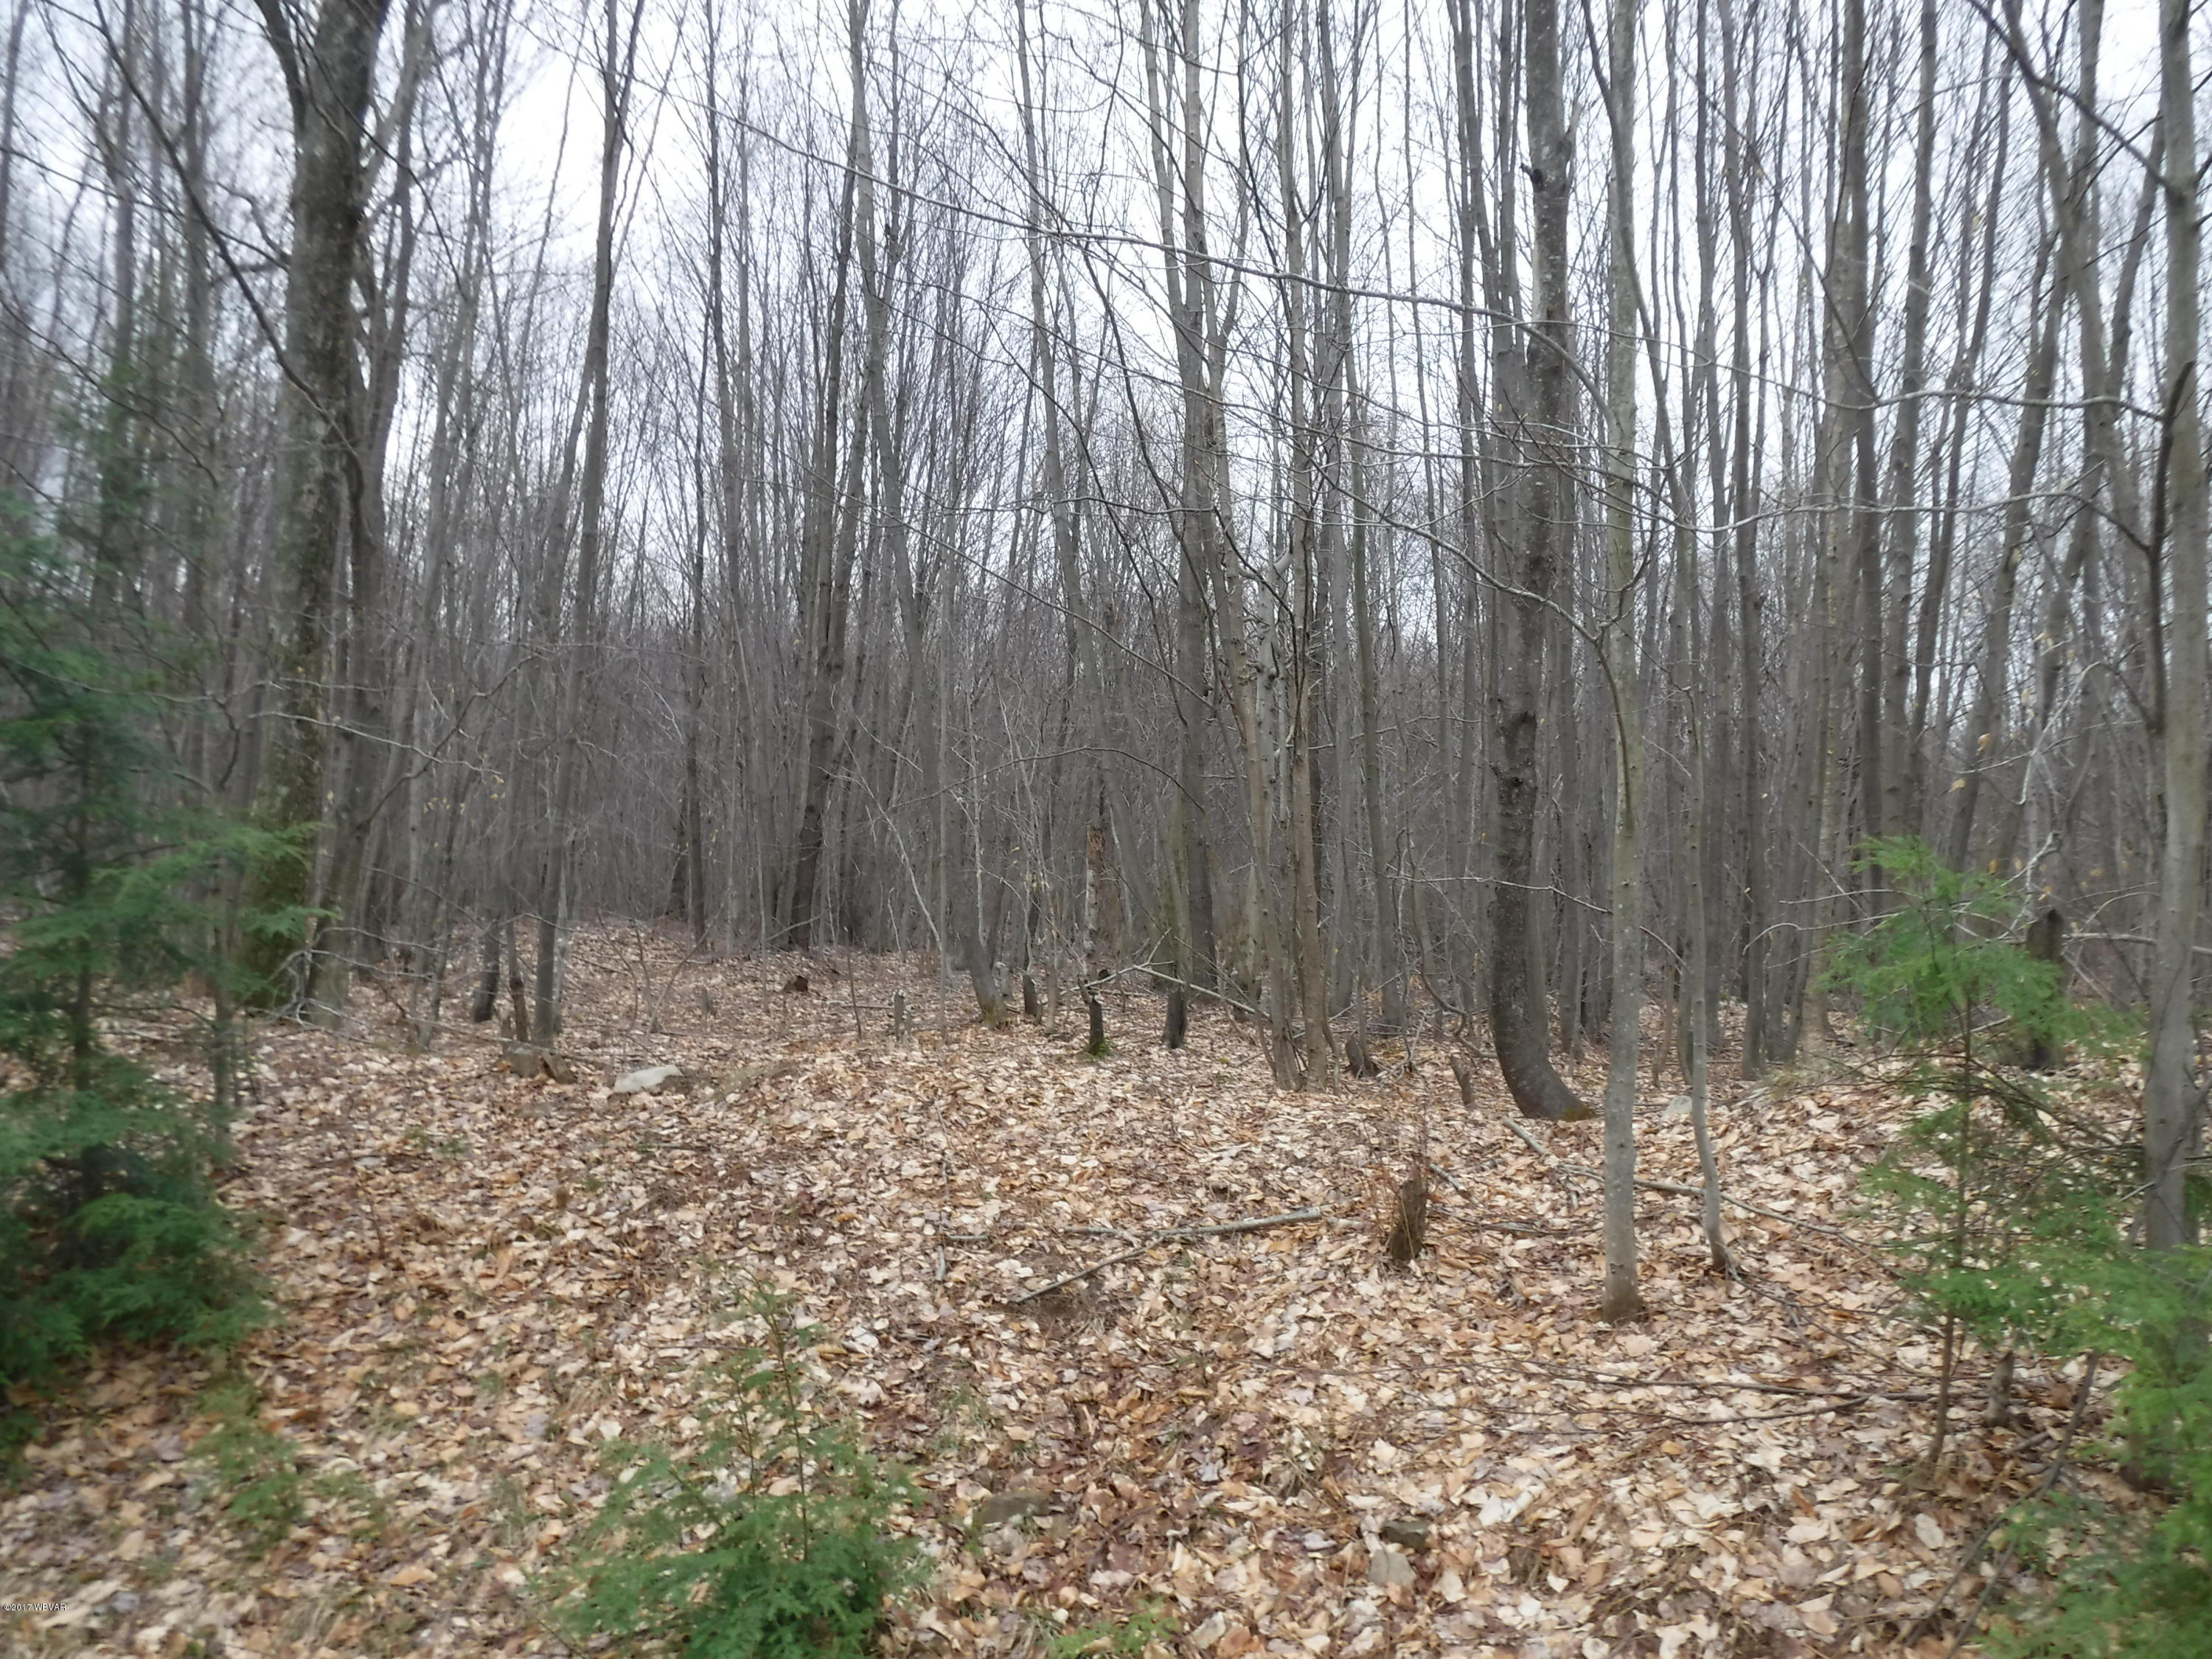 LOT 4 MOLLY STREET, Dushore, PA 18614, ,Land,For sale,MOLLY,WB-79828